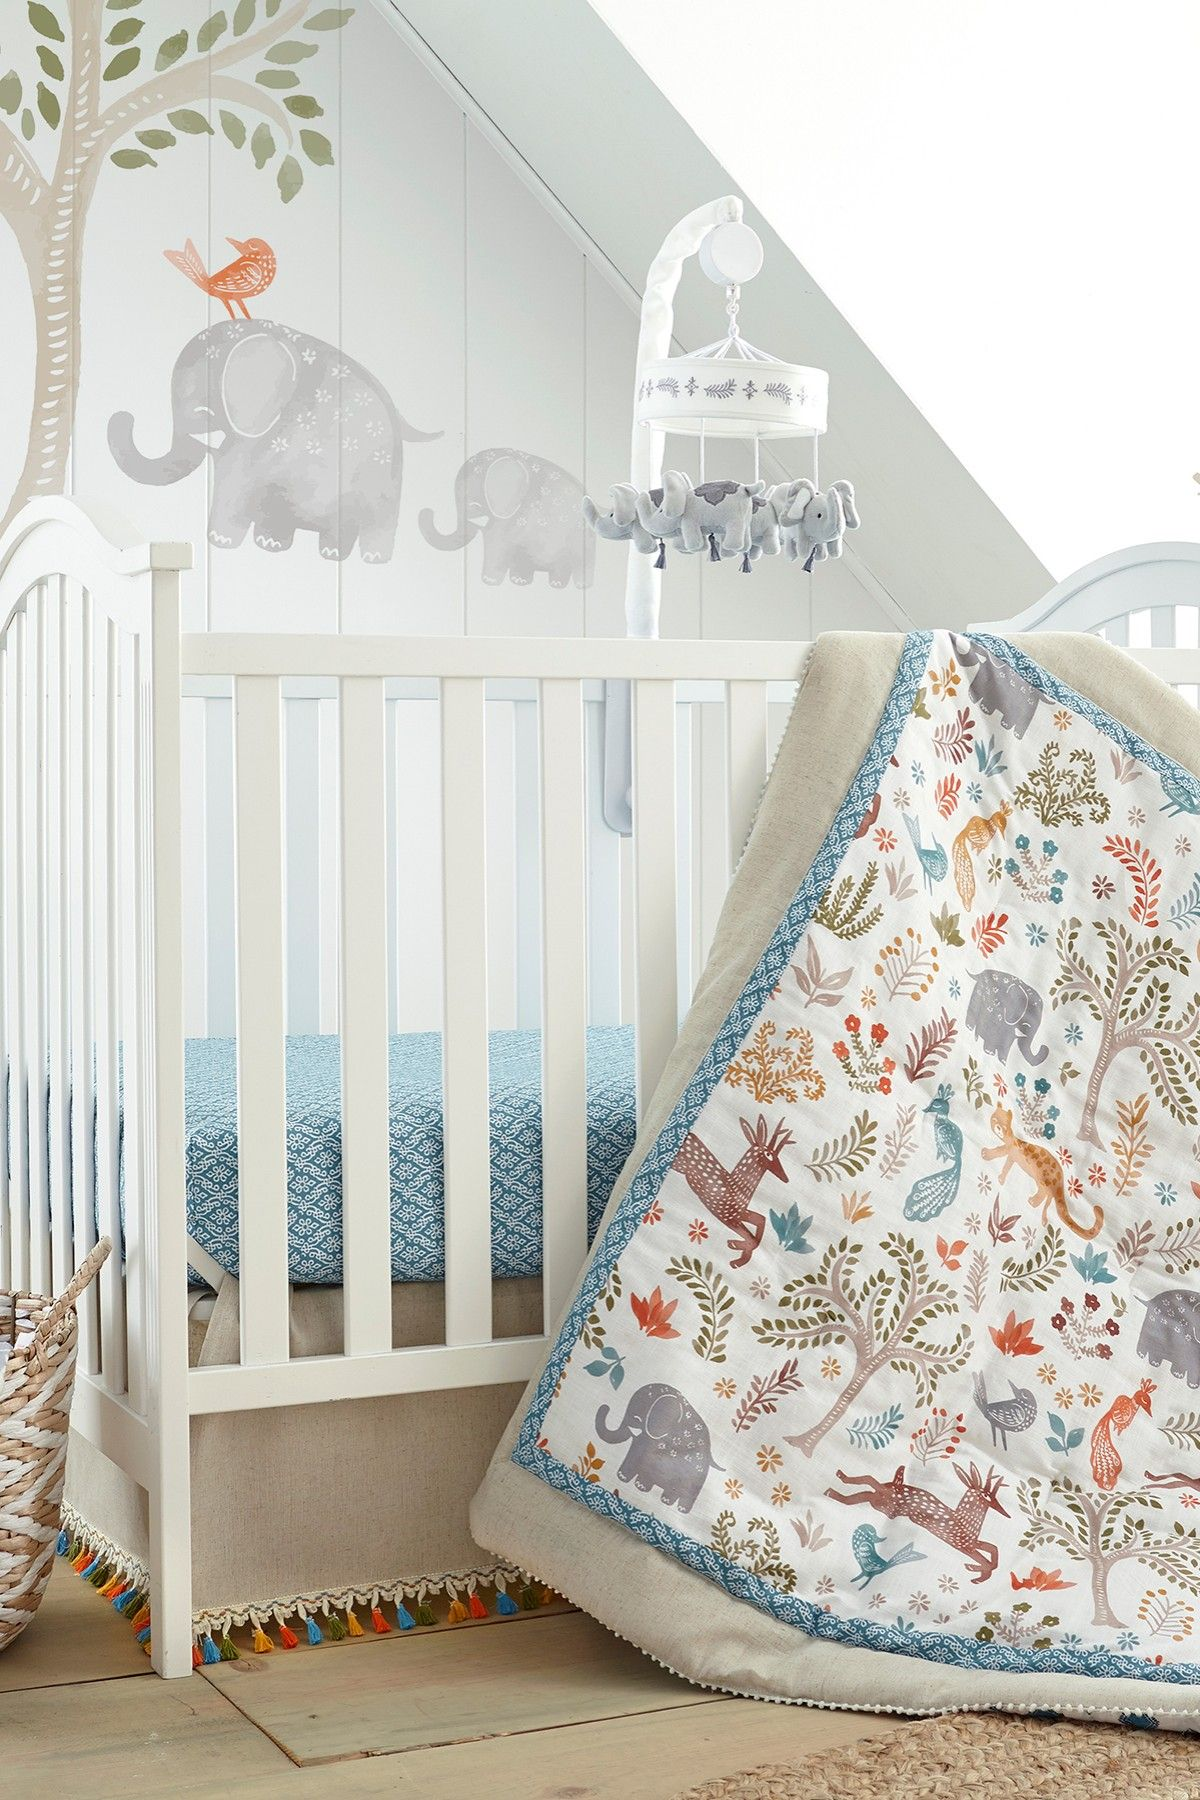 Levtex   Jungalo Bedding 5 Piece Set   Natural   Crib is now 34